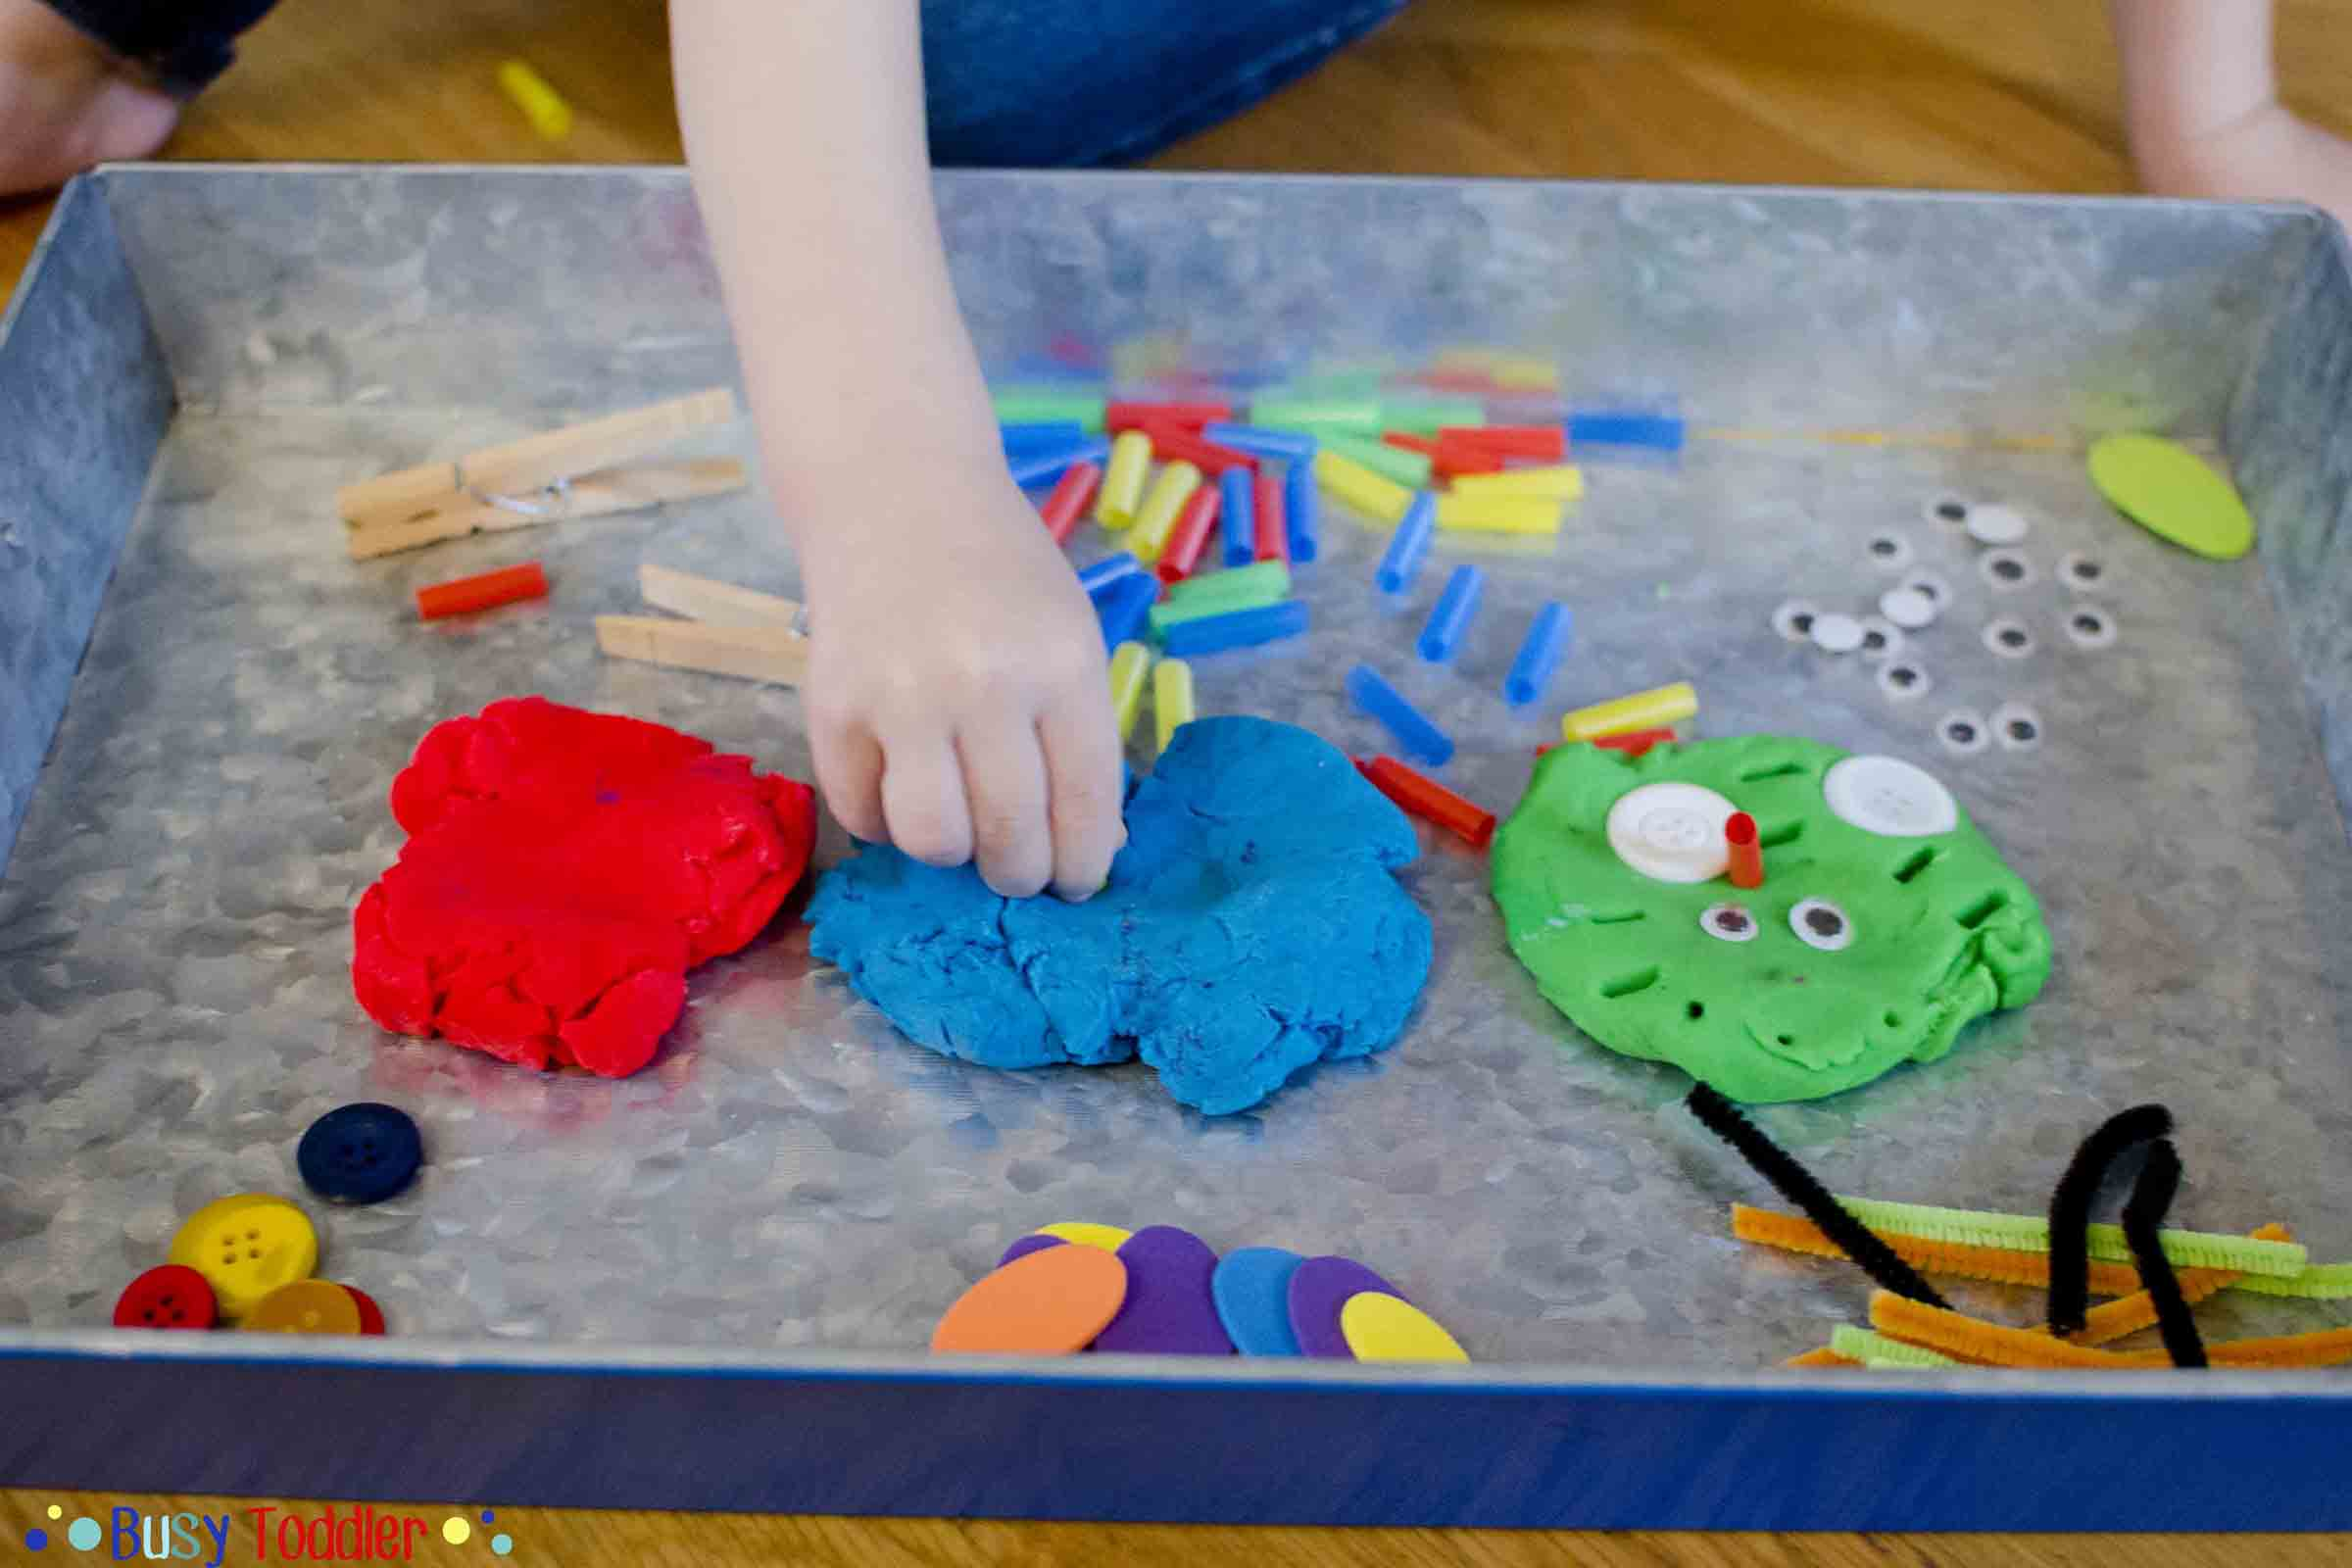 PLAY-DOH FACES: An easy way to create and imagine